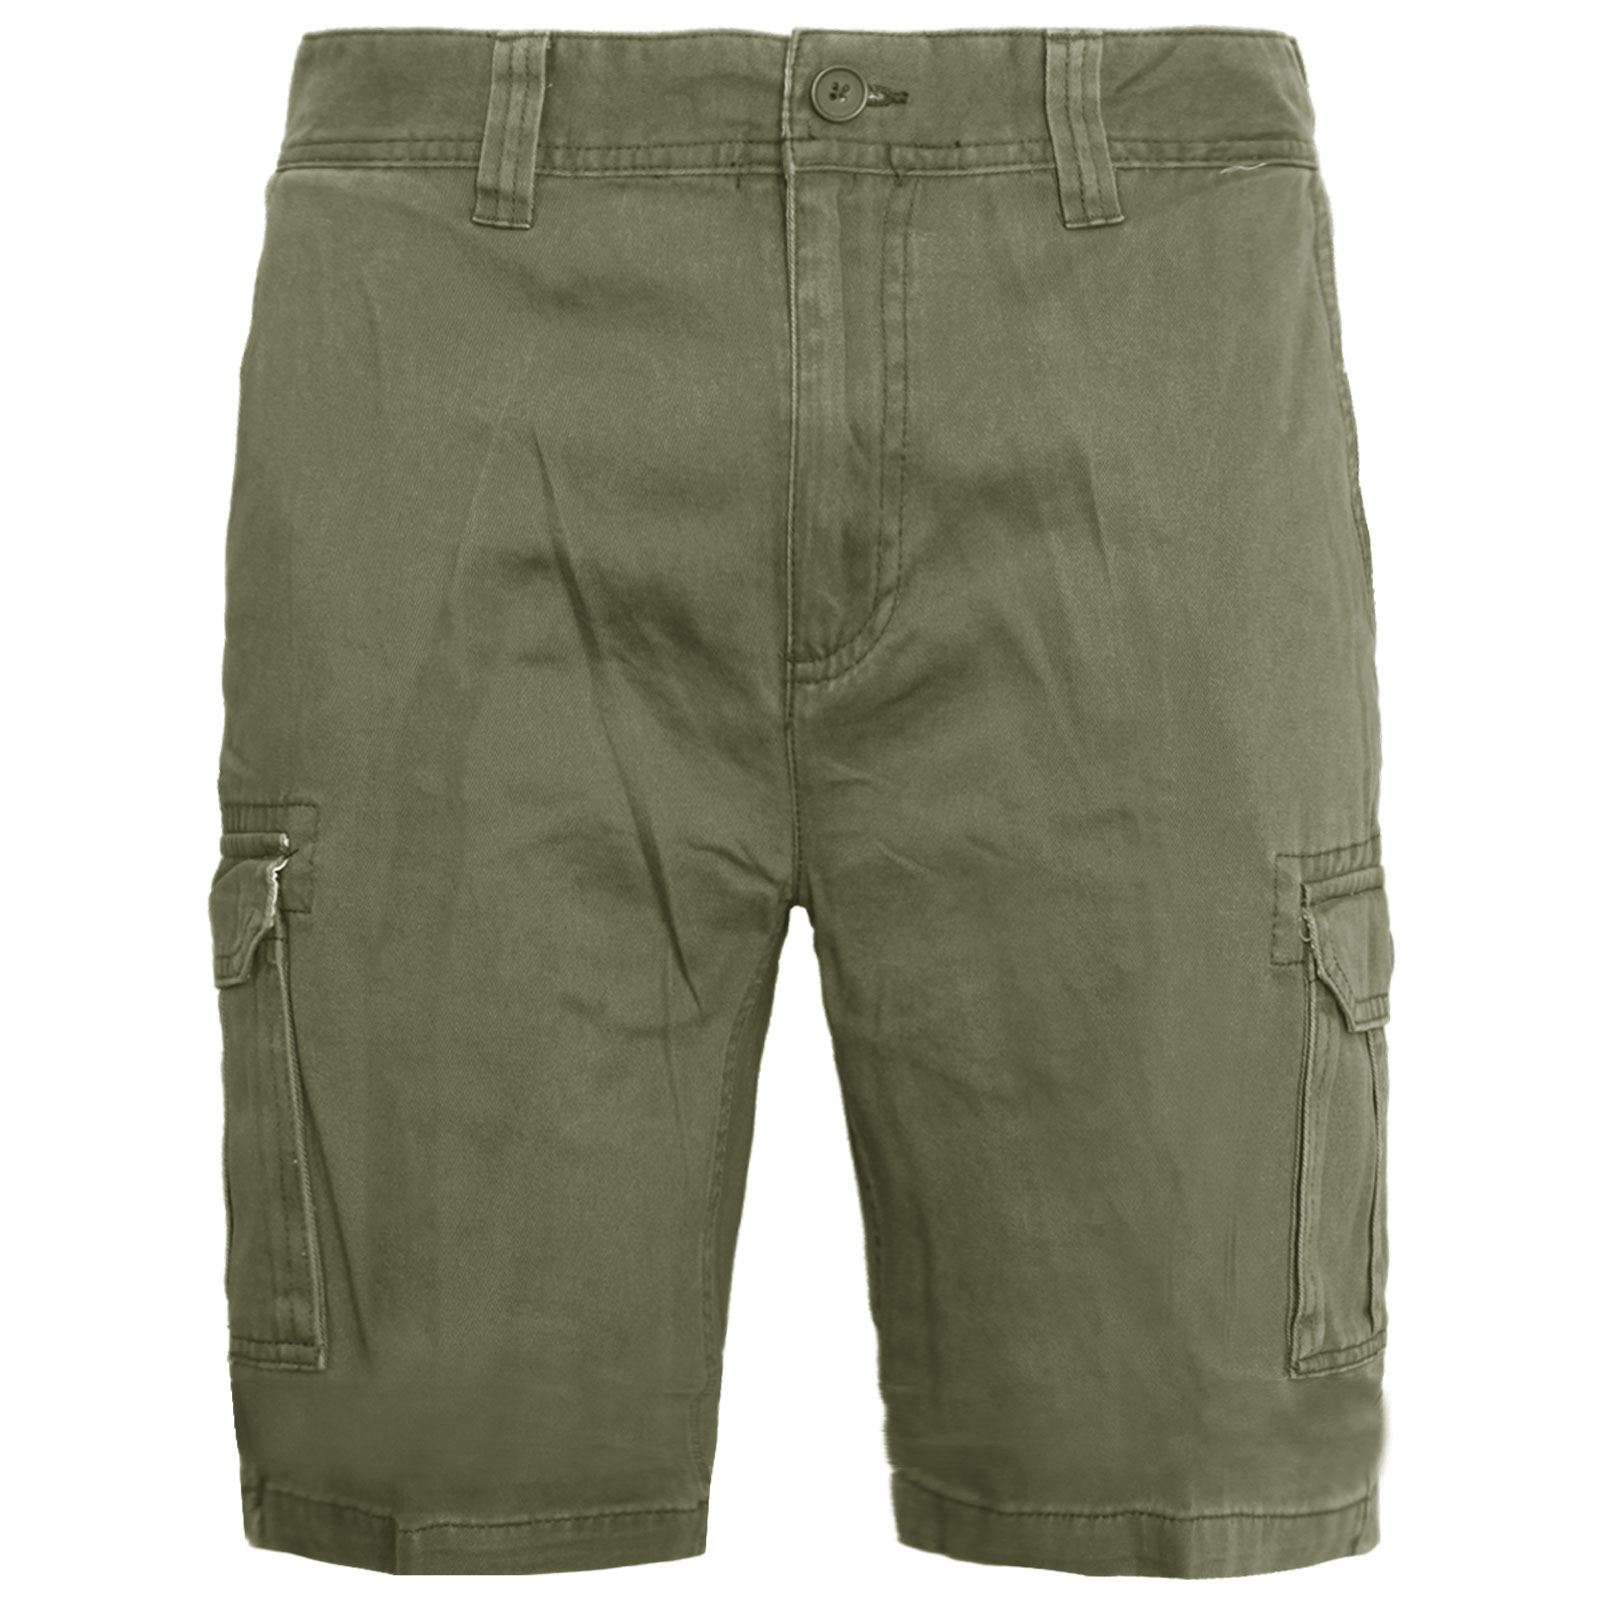 894d578cb79 Details about Mens Chino Shorts Jersey Fleece Gym Short Big Sizes All Style  Cargo Combat Short